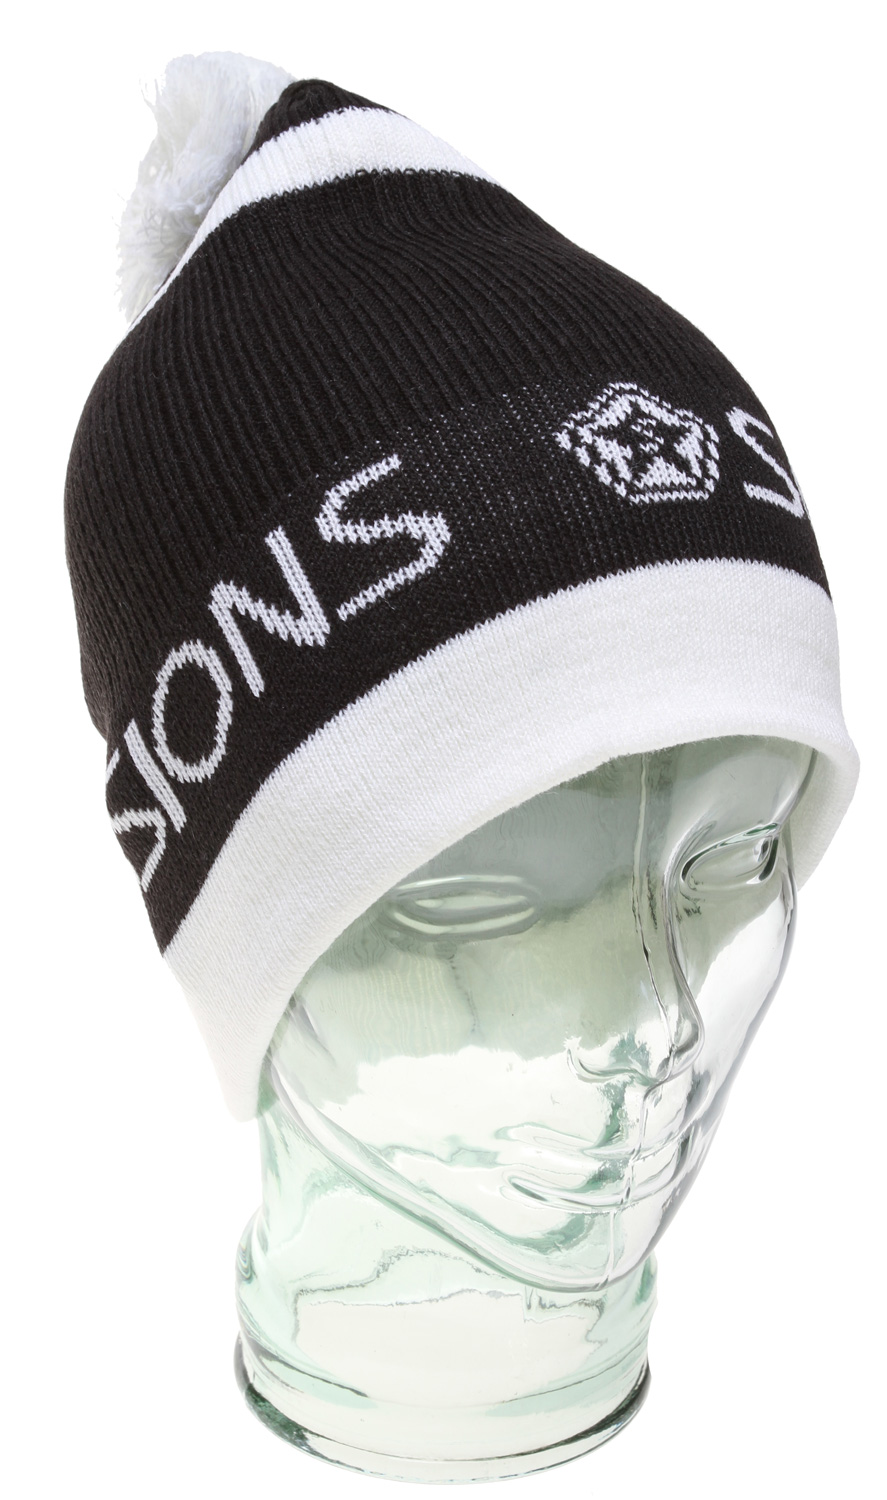 If you feel like staying warm without sacrificing your style, be sure to grab the Sessions Double Agent Beanie for men. This fashionable and functional beanie is constructed of 100% acrylic material, standing up to any abuse thrown its way. Perfect for staying warm at the resort, in the backcountry, or even while sipping martinis. Of course - shaken, not stirred.Key Features of the Sessions Double Agent Beanie:  One Size  Two-tone Beanie  Thick Pom  Acrylic - $9.95